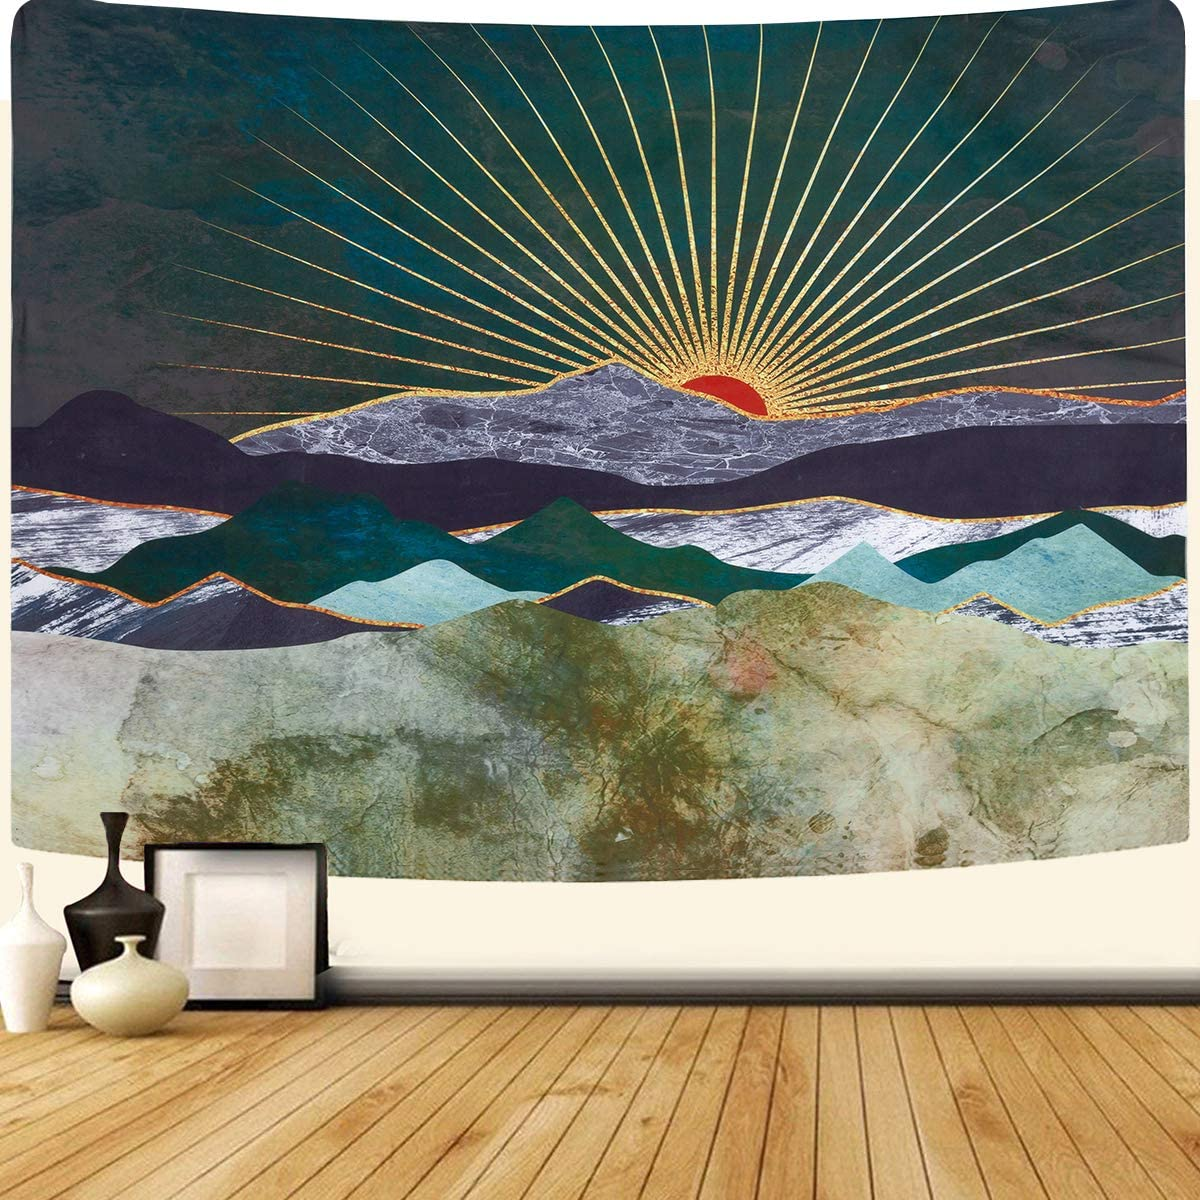 SENYYI Mountain and Sunset Tapestry Wall Hanging Shining Sun and Nature Landscape Tapestry Abstract Art Home Decor for Room 70.9 x 92.5 inches